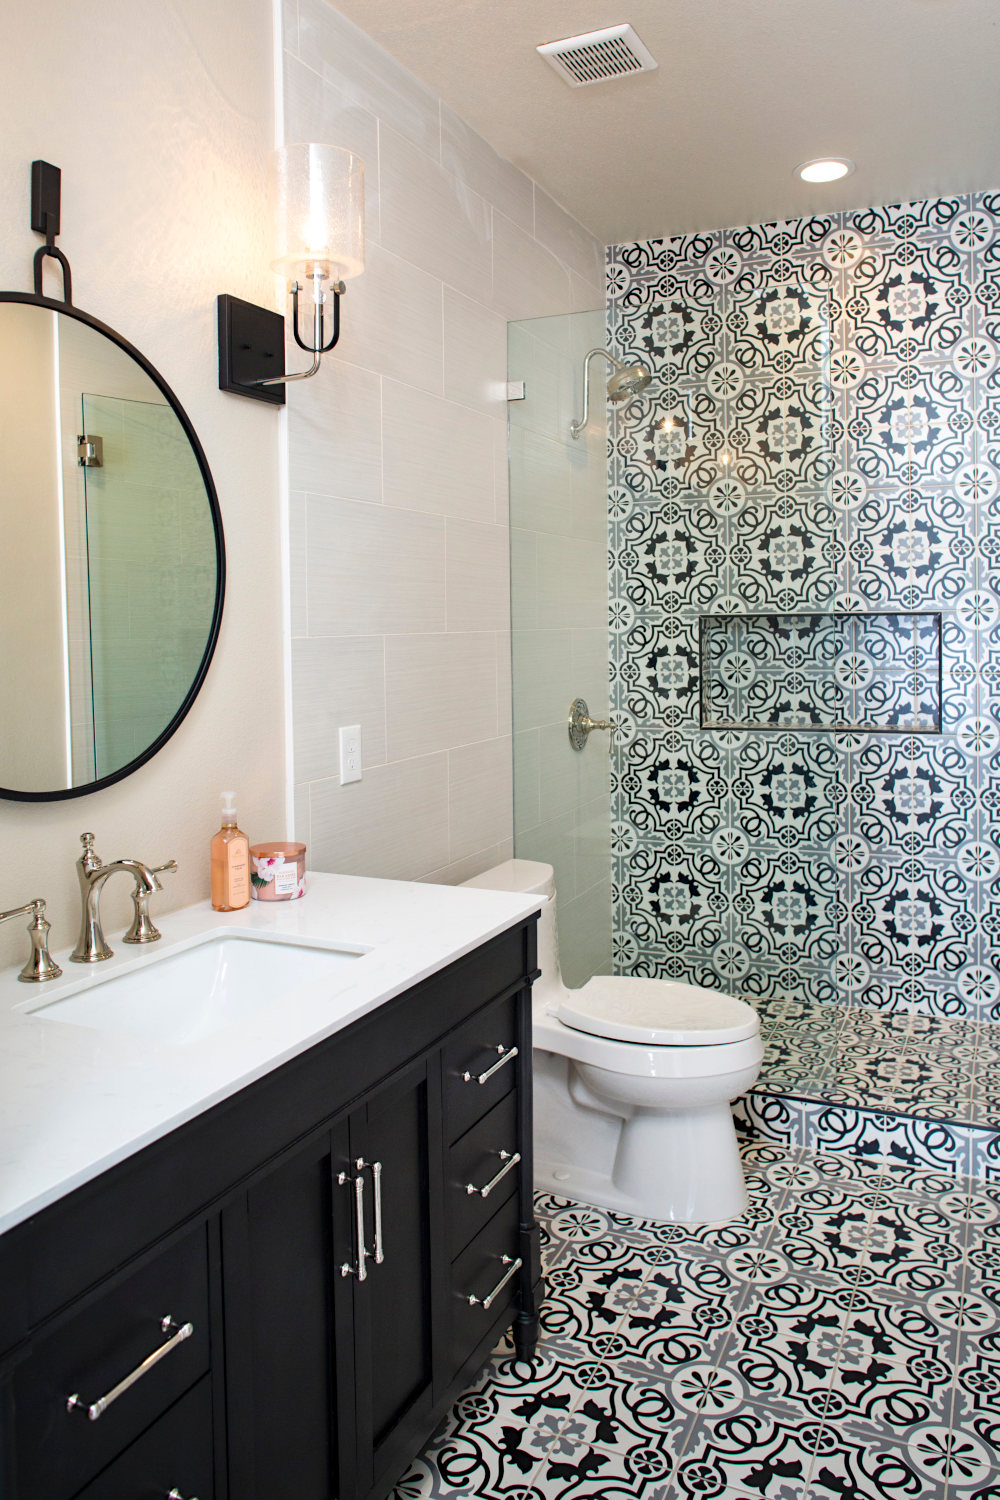 Updated bathroom and walk-in shower to white and black themed marble and tile.